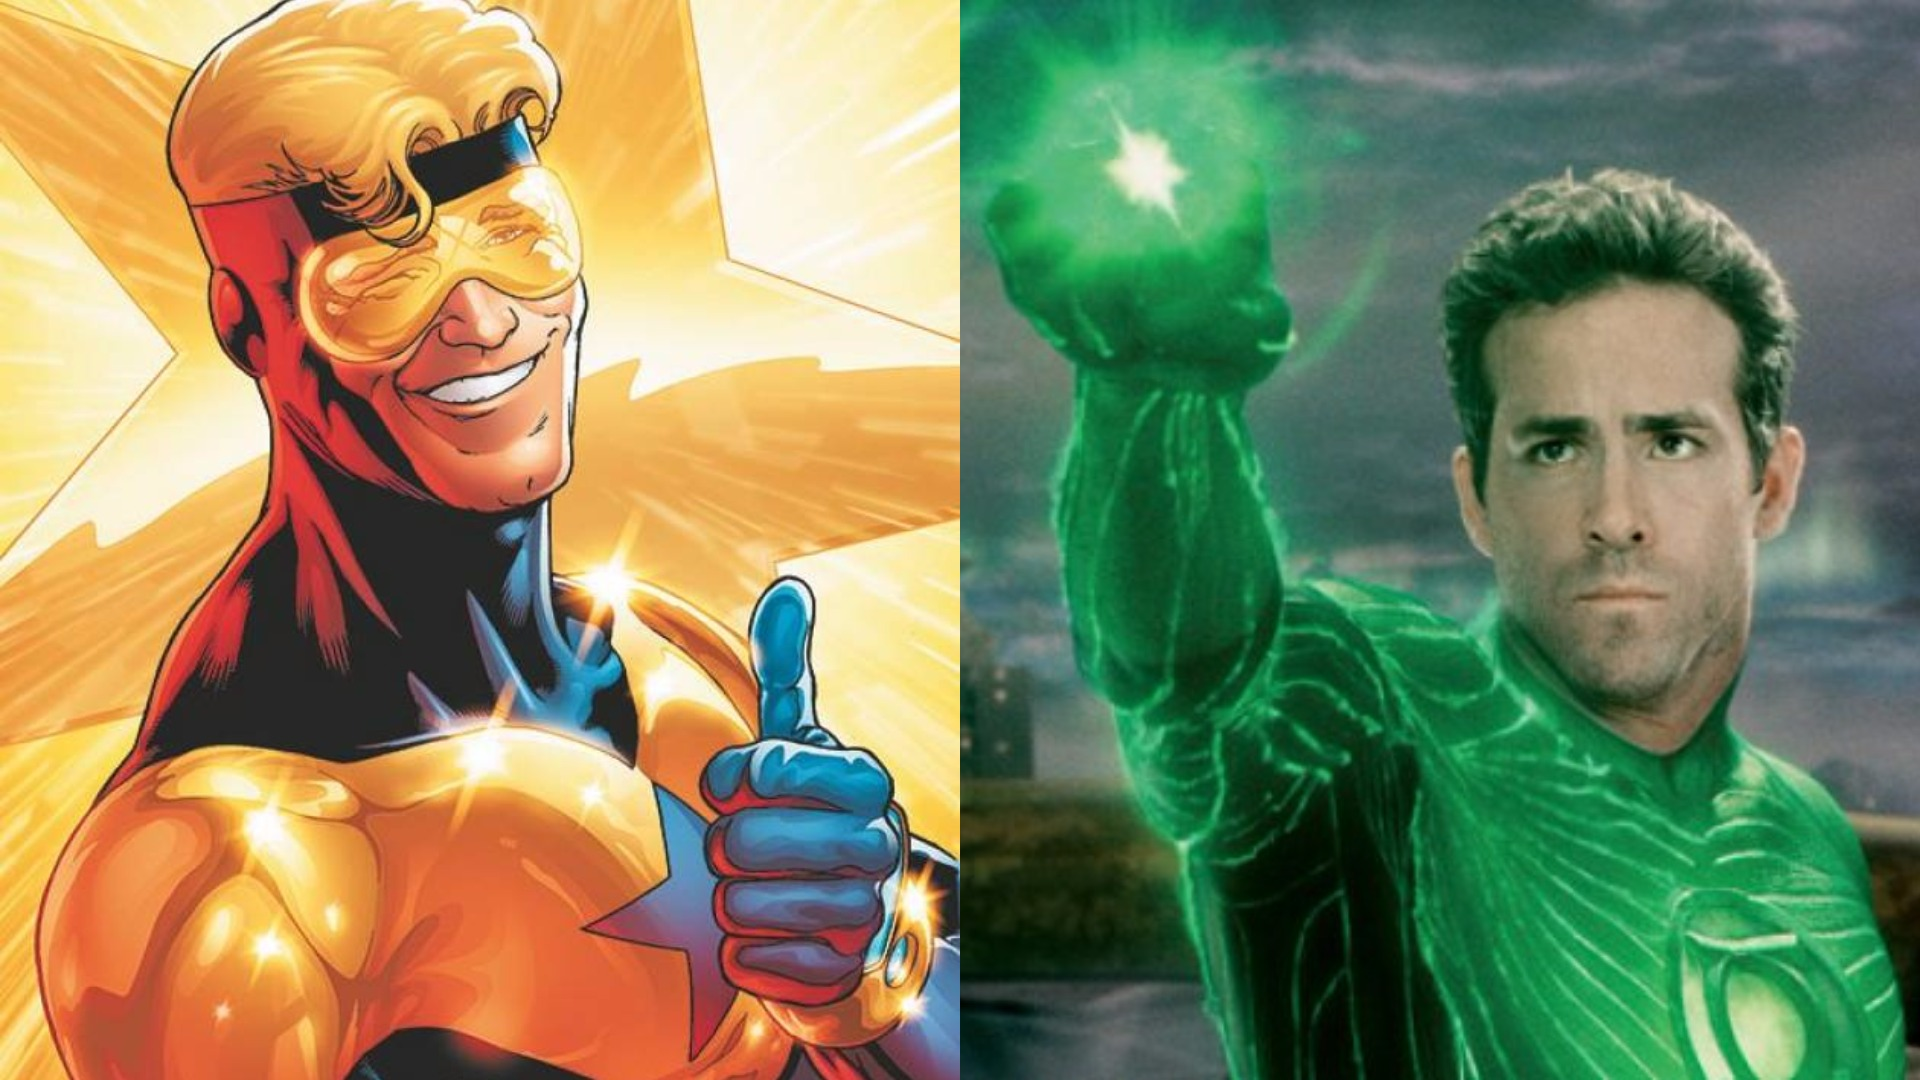 What can Booster Gold and the Green Lantern debacle have in common?